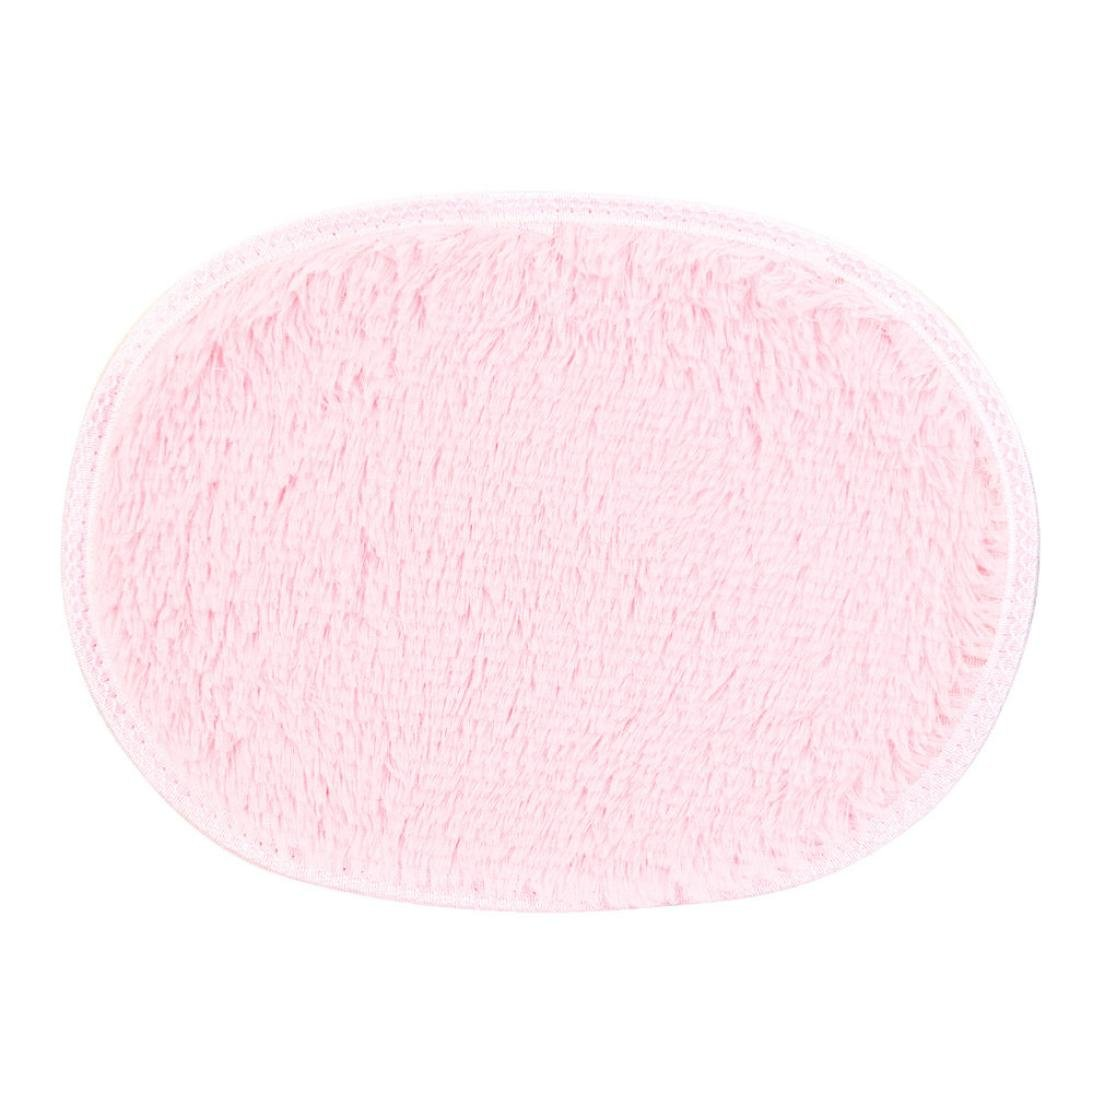 Sikye Shaggy Area Rug Home Bedroom Bathroom Doormat Soft Oval Chair Cover Seat Pad Non-slip 3040cm (pink)